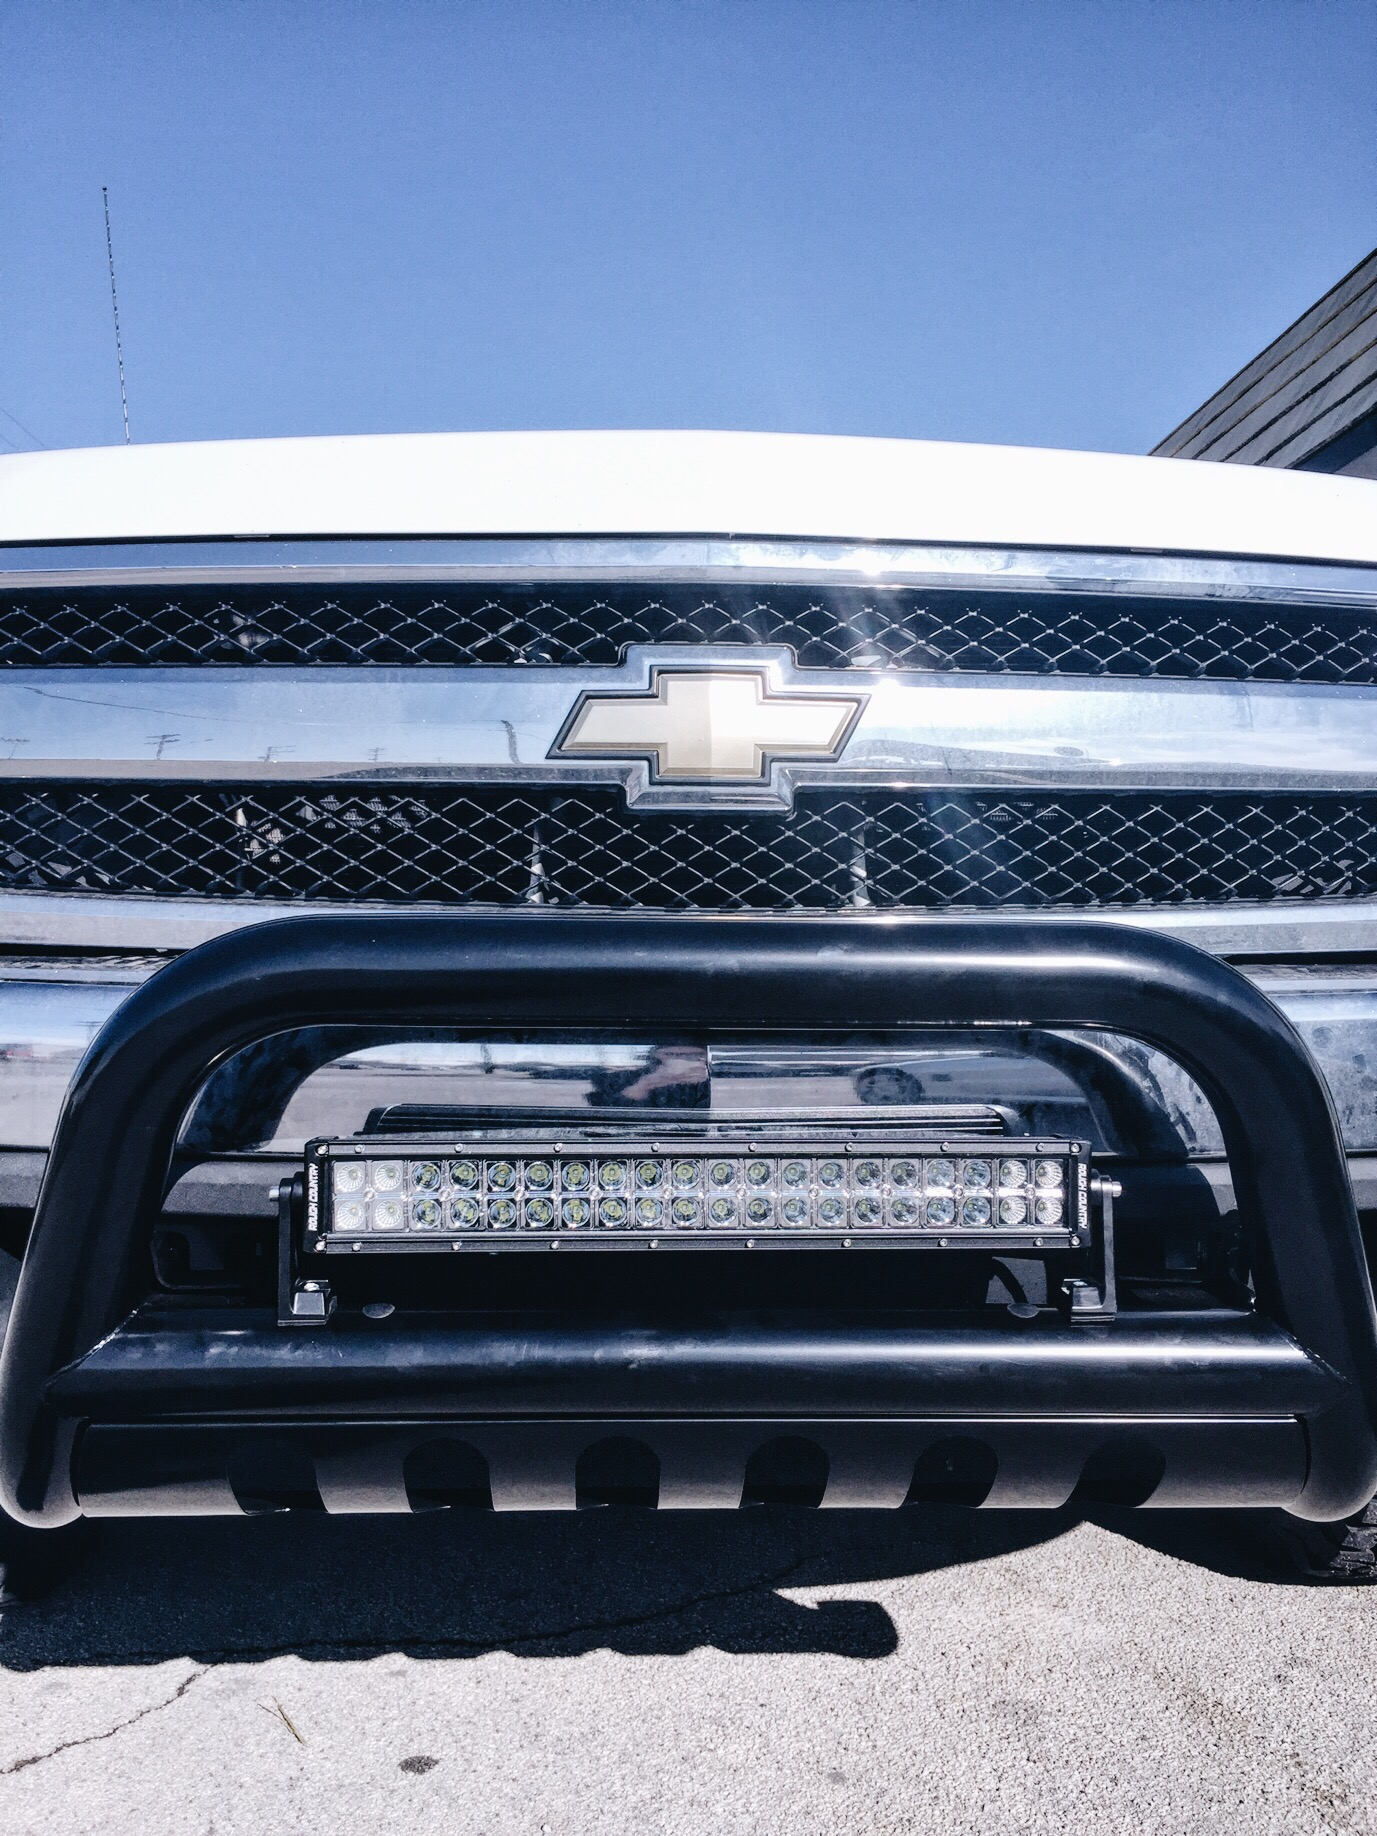 Chevy grill with bull bar + light bar